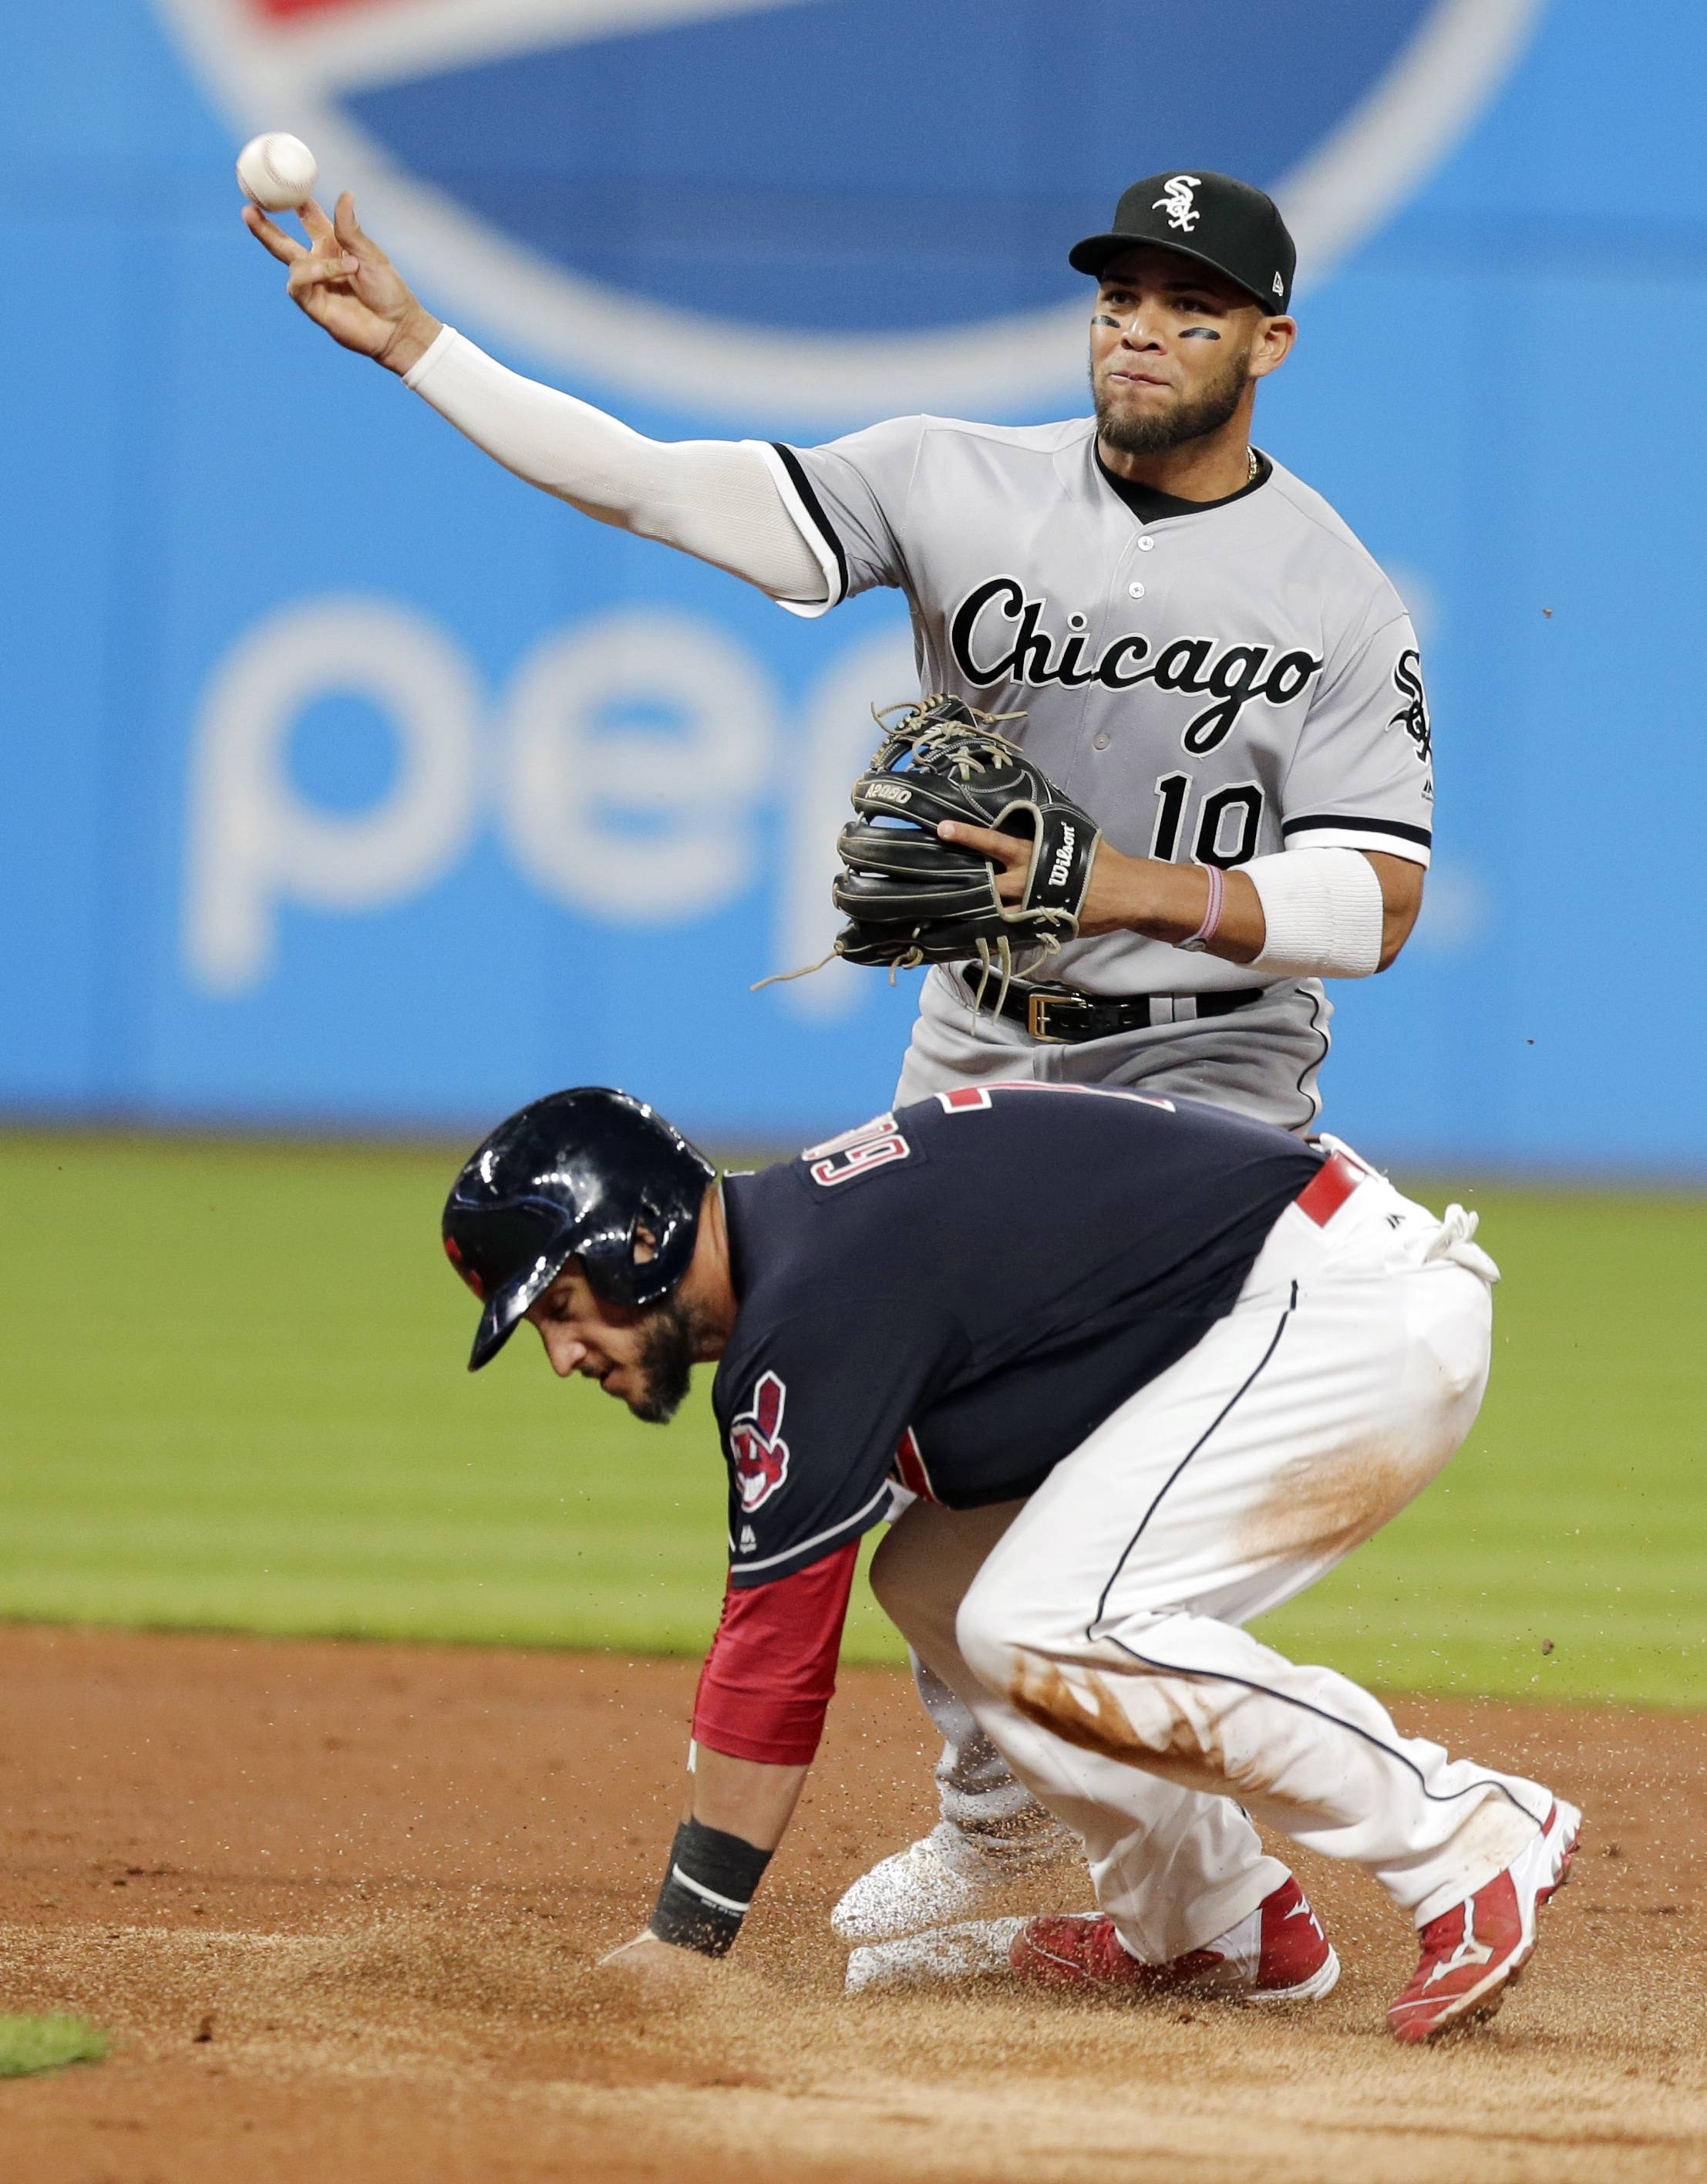 Chicago White Sox's Yoan Moncada, top, gets Cleveland Indians' Yan Gomes, bottom, out at second base and throws to first base in the third inning of a game Saturday in Cleveland. The Sox finished the regular season with a 67-95 record.